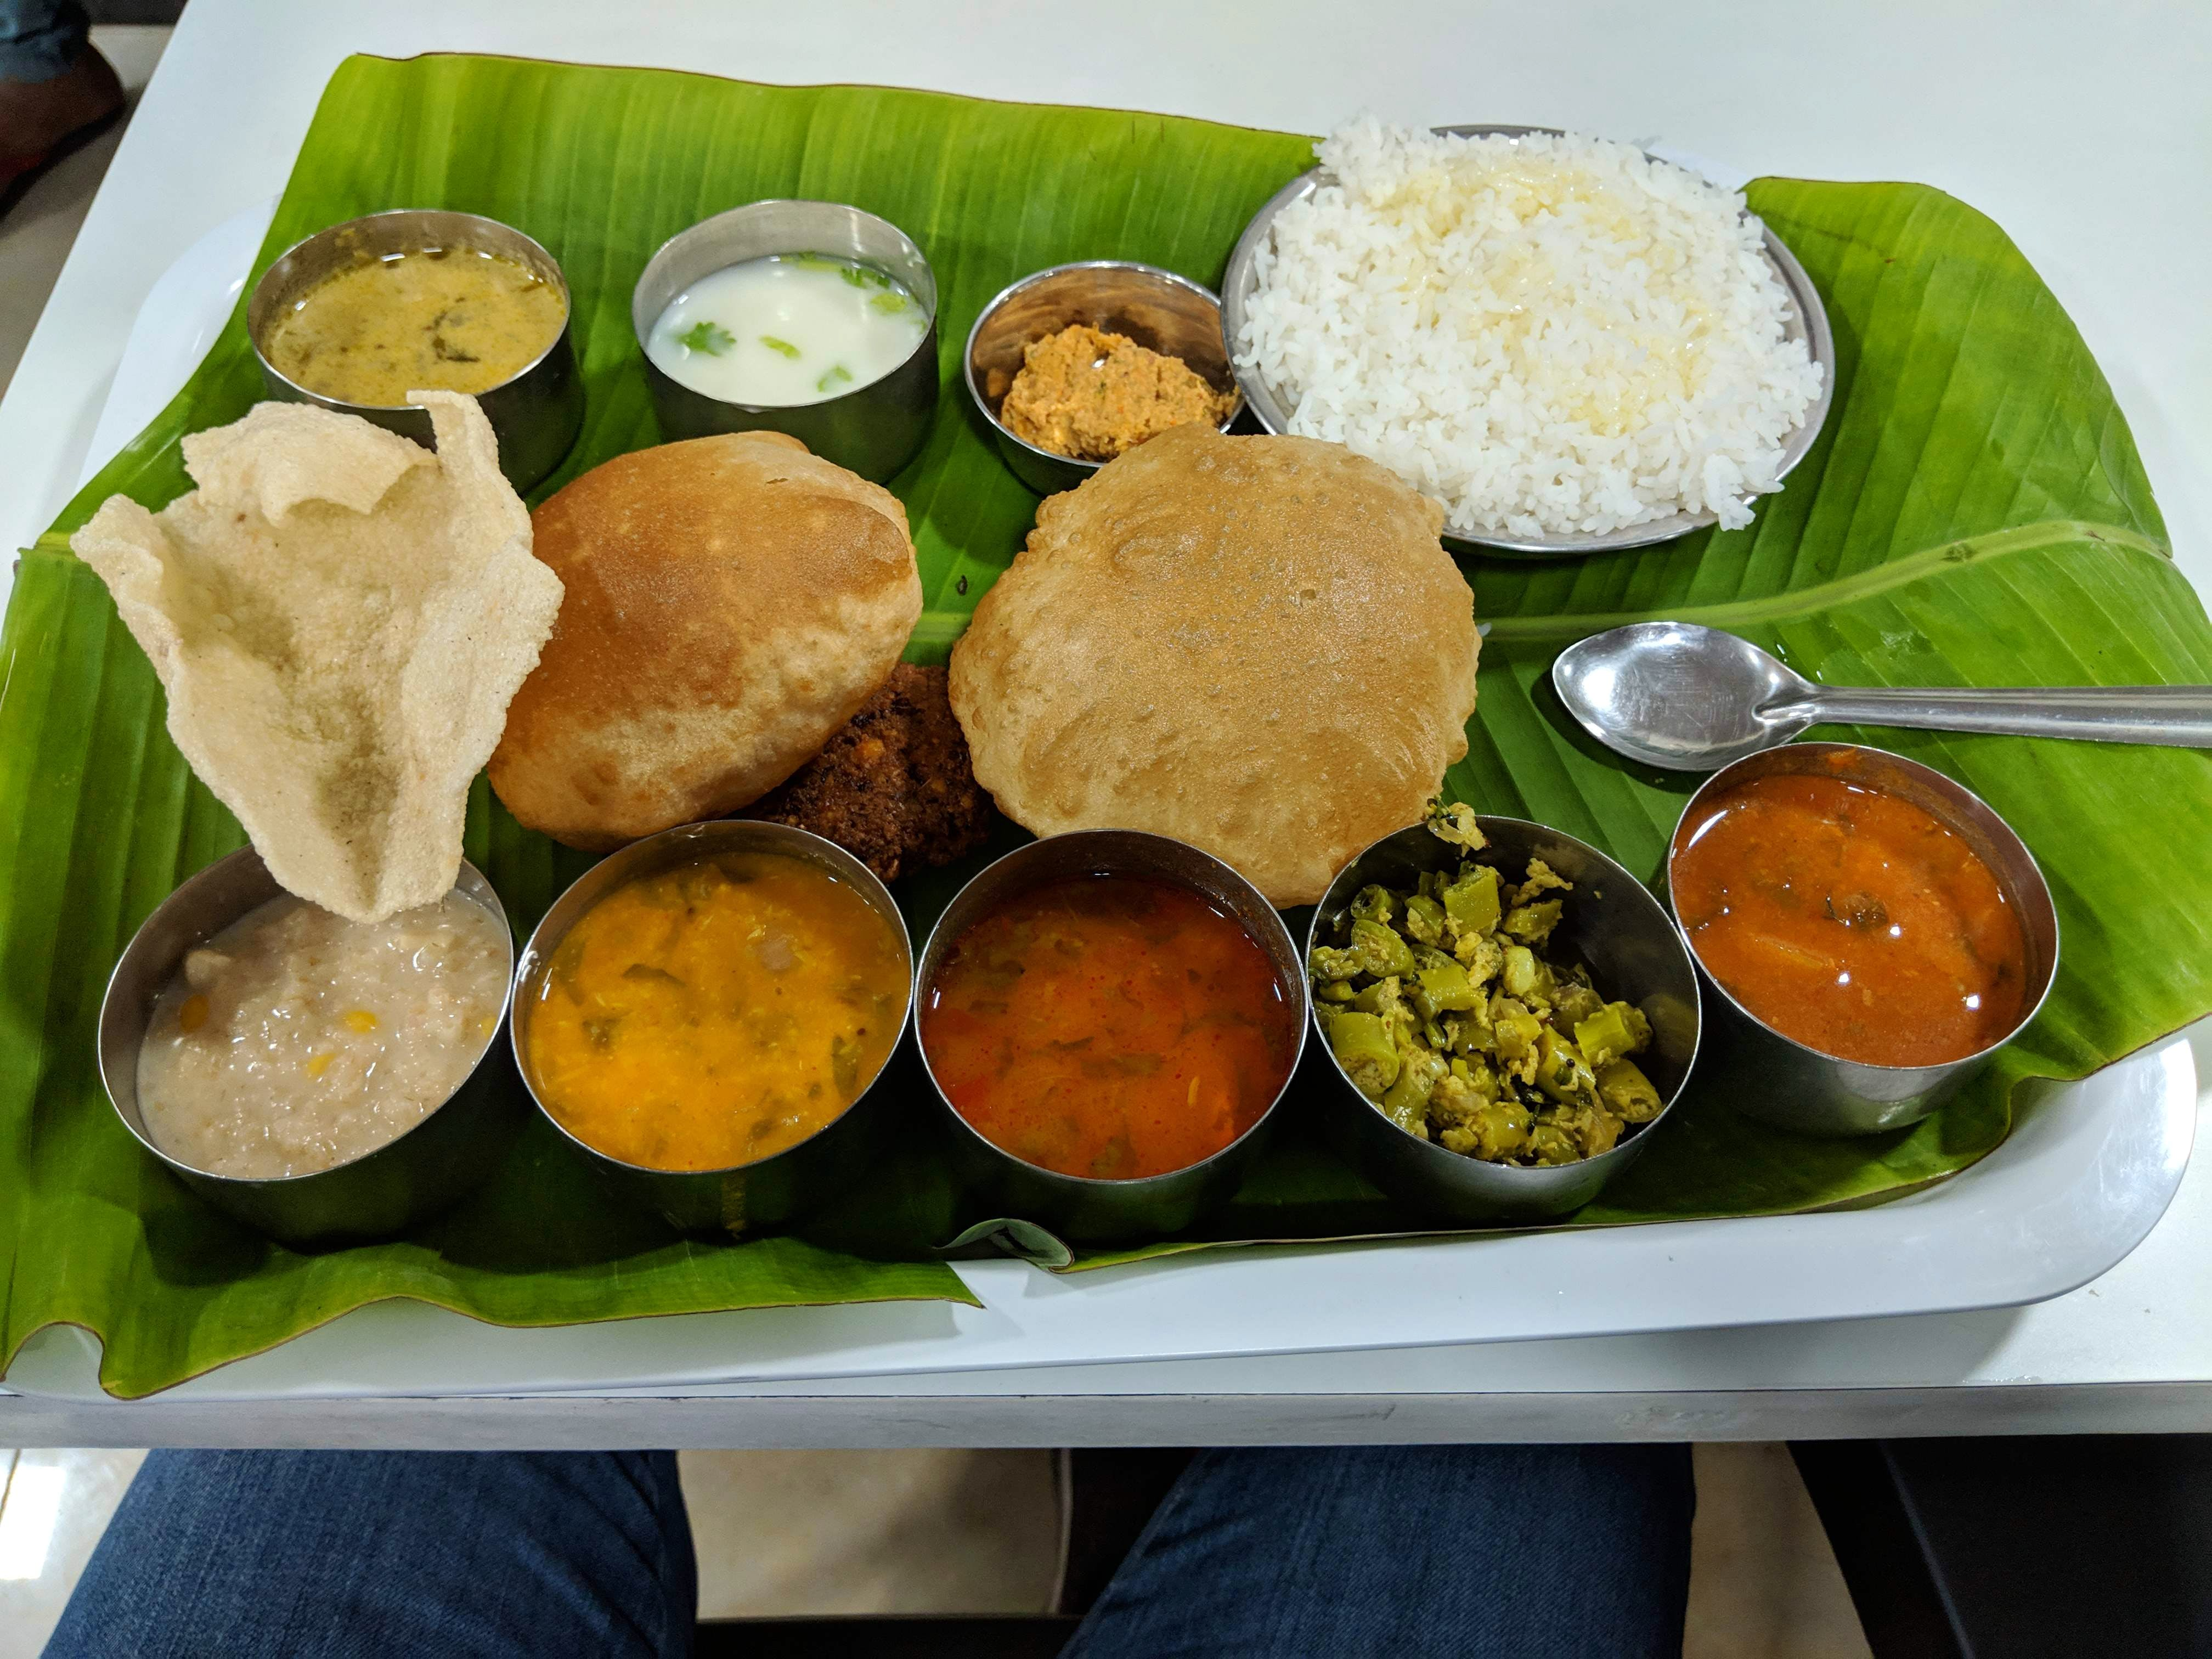 Dish,Food,Cuisine,Meal,Ingredient,Tamil food,Andhra food,Produce,Comfort food,Delicacy